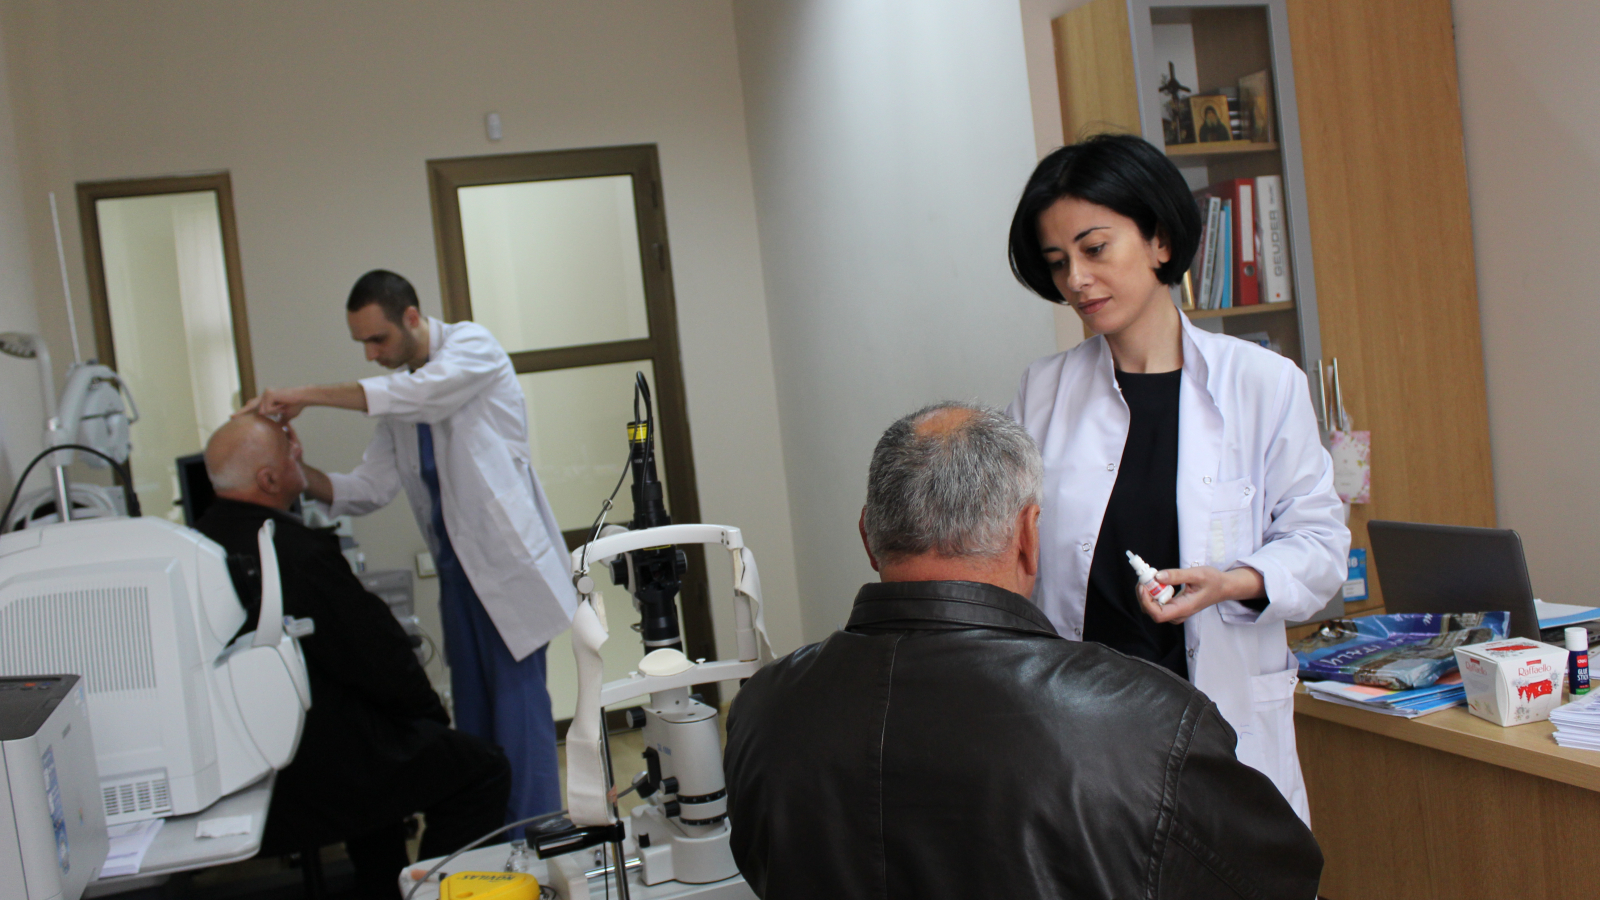 Tekla Mamageishvili, Director of a Tbilisi-based eye clinic, examines her patient